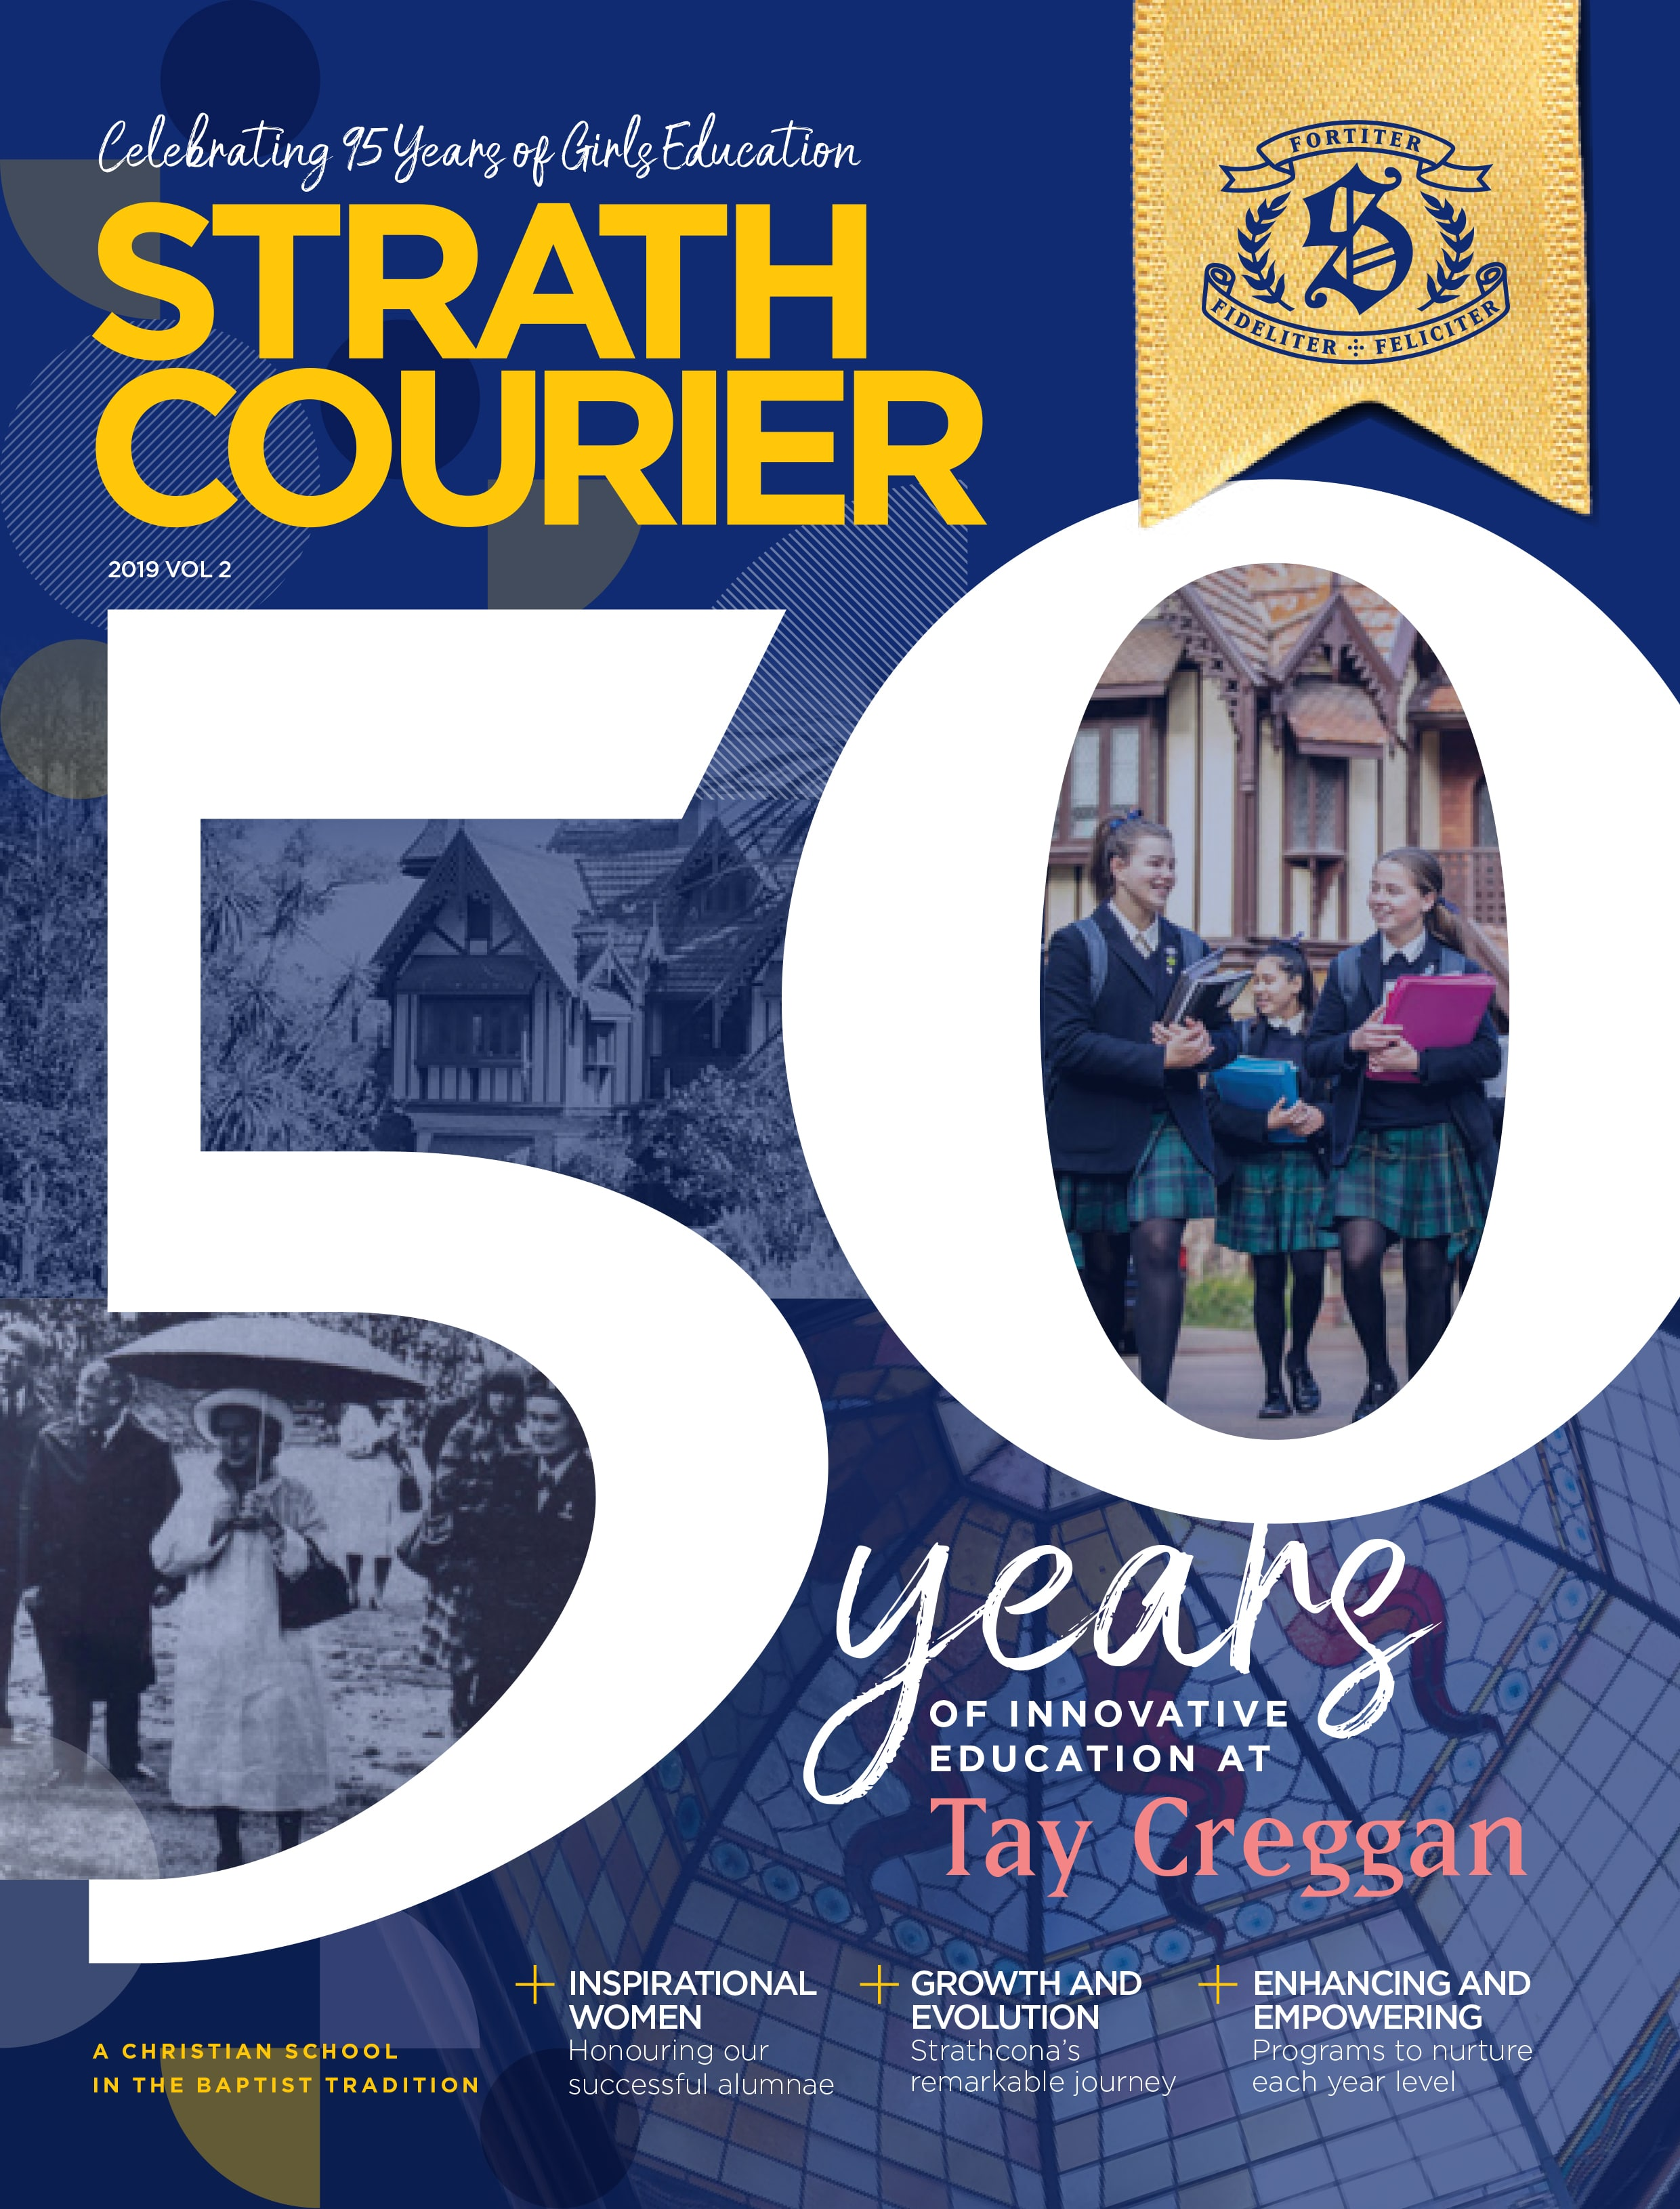 Strath Courier 50 years